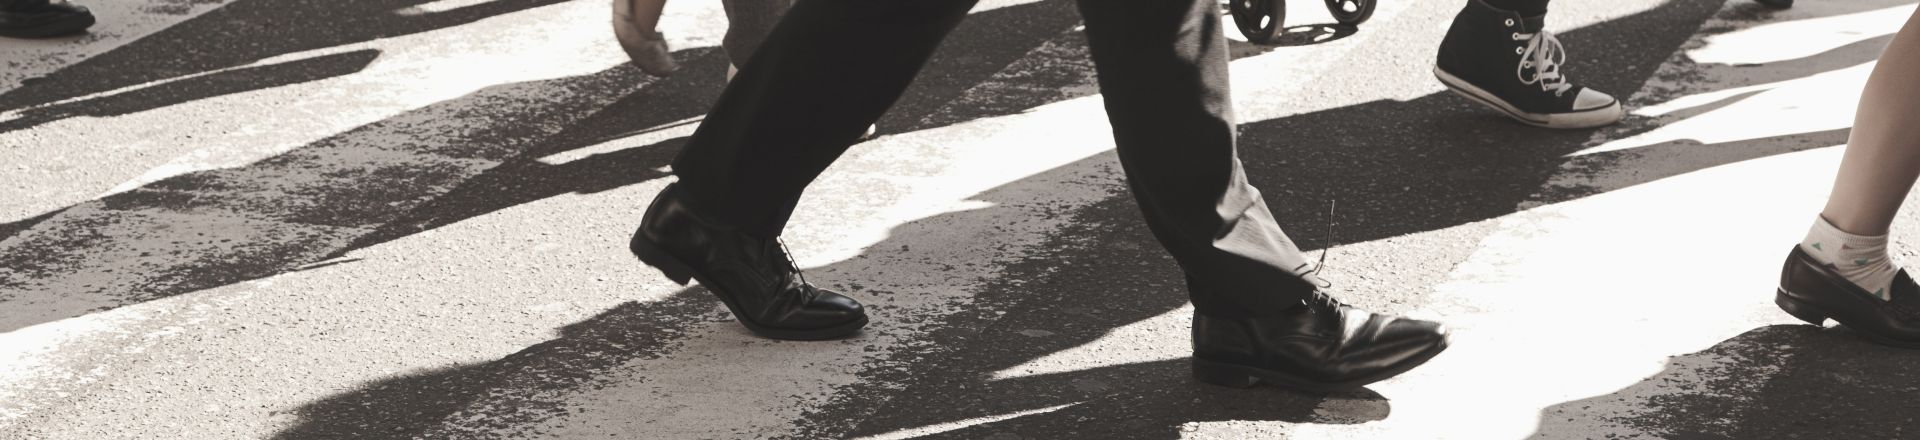 People Crossing The Road At A Pedestrian Crossing. Pedestrian Accidents Injury Lawyer